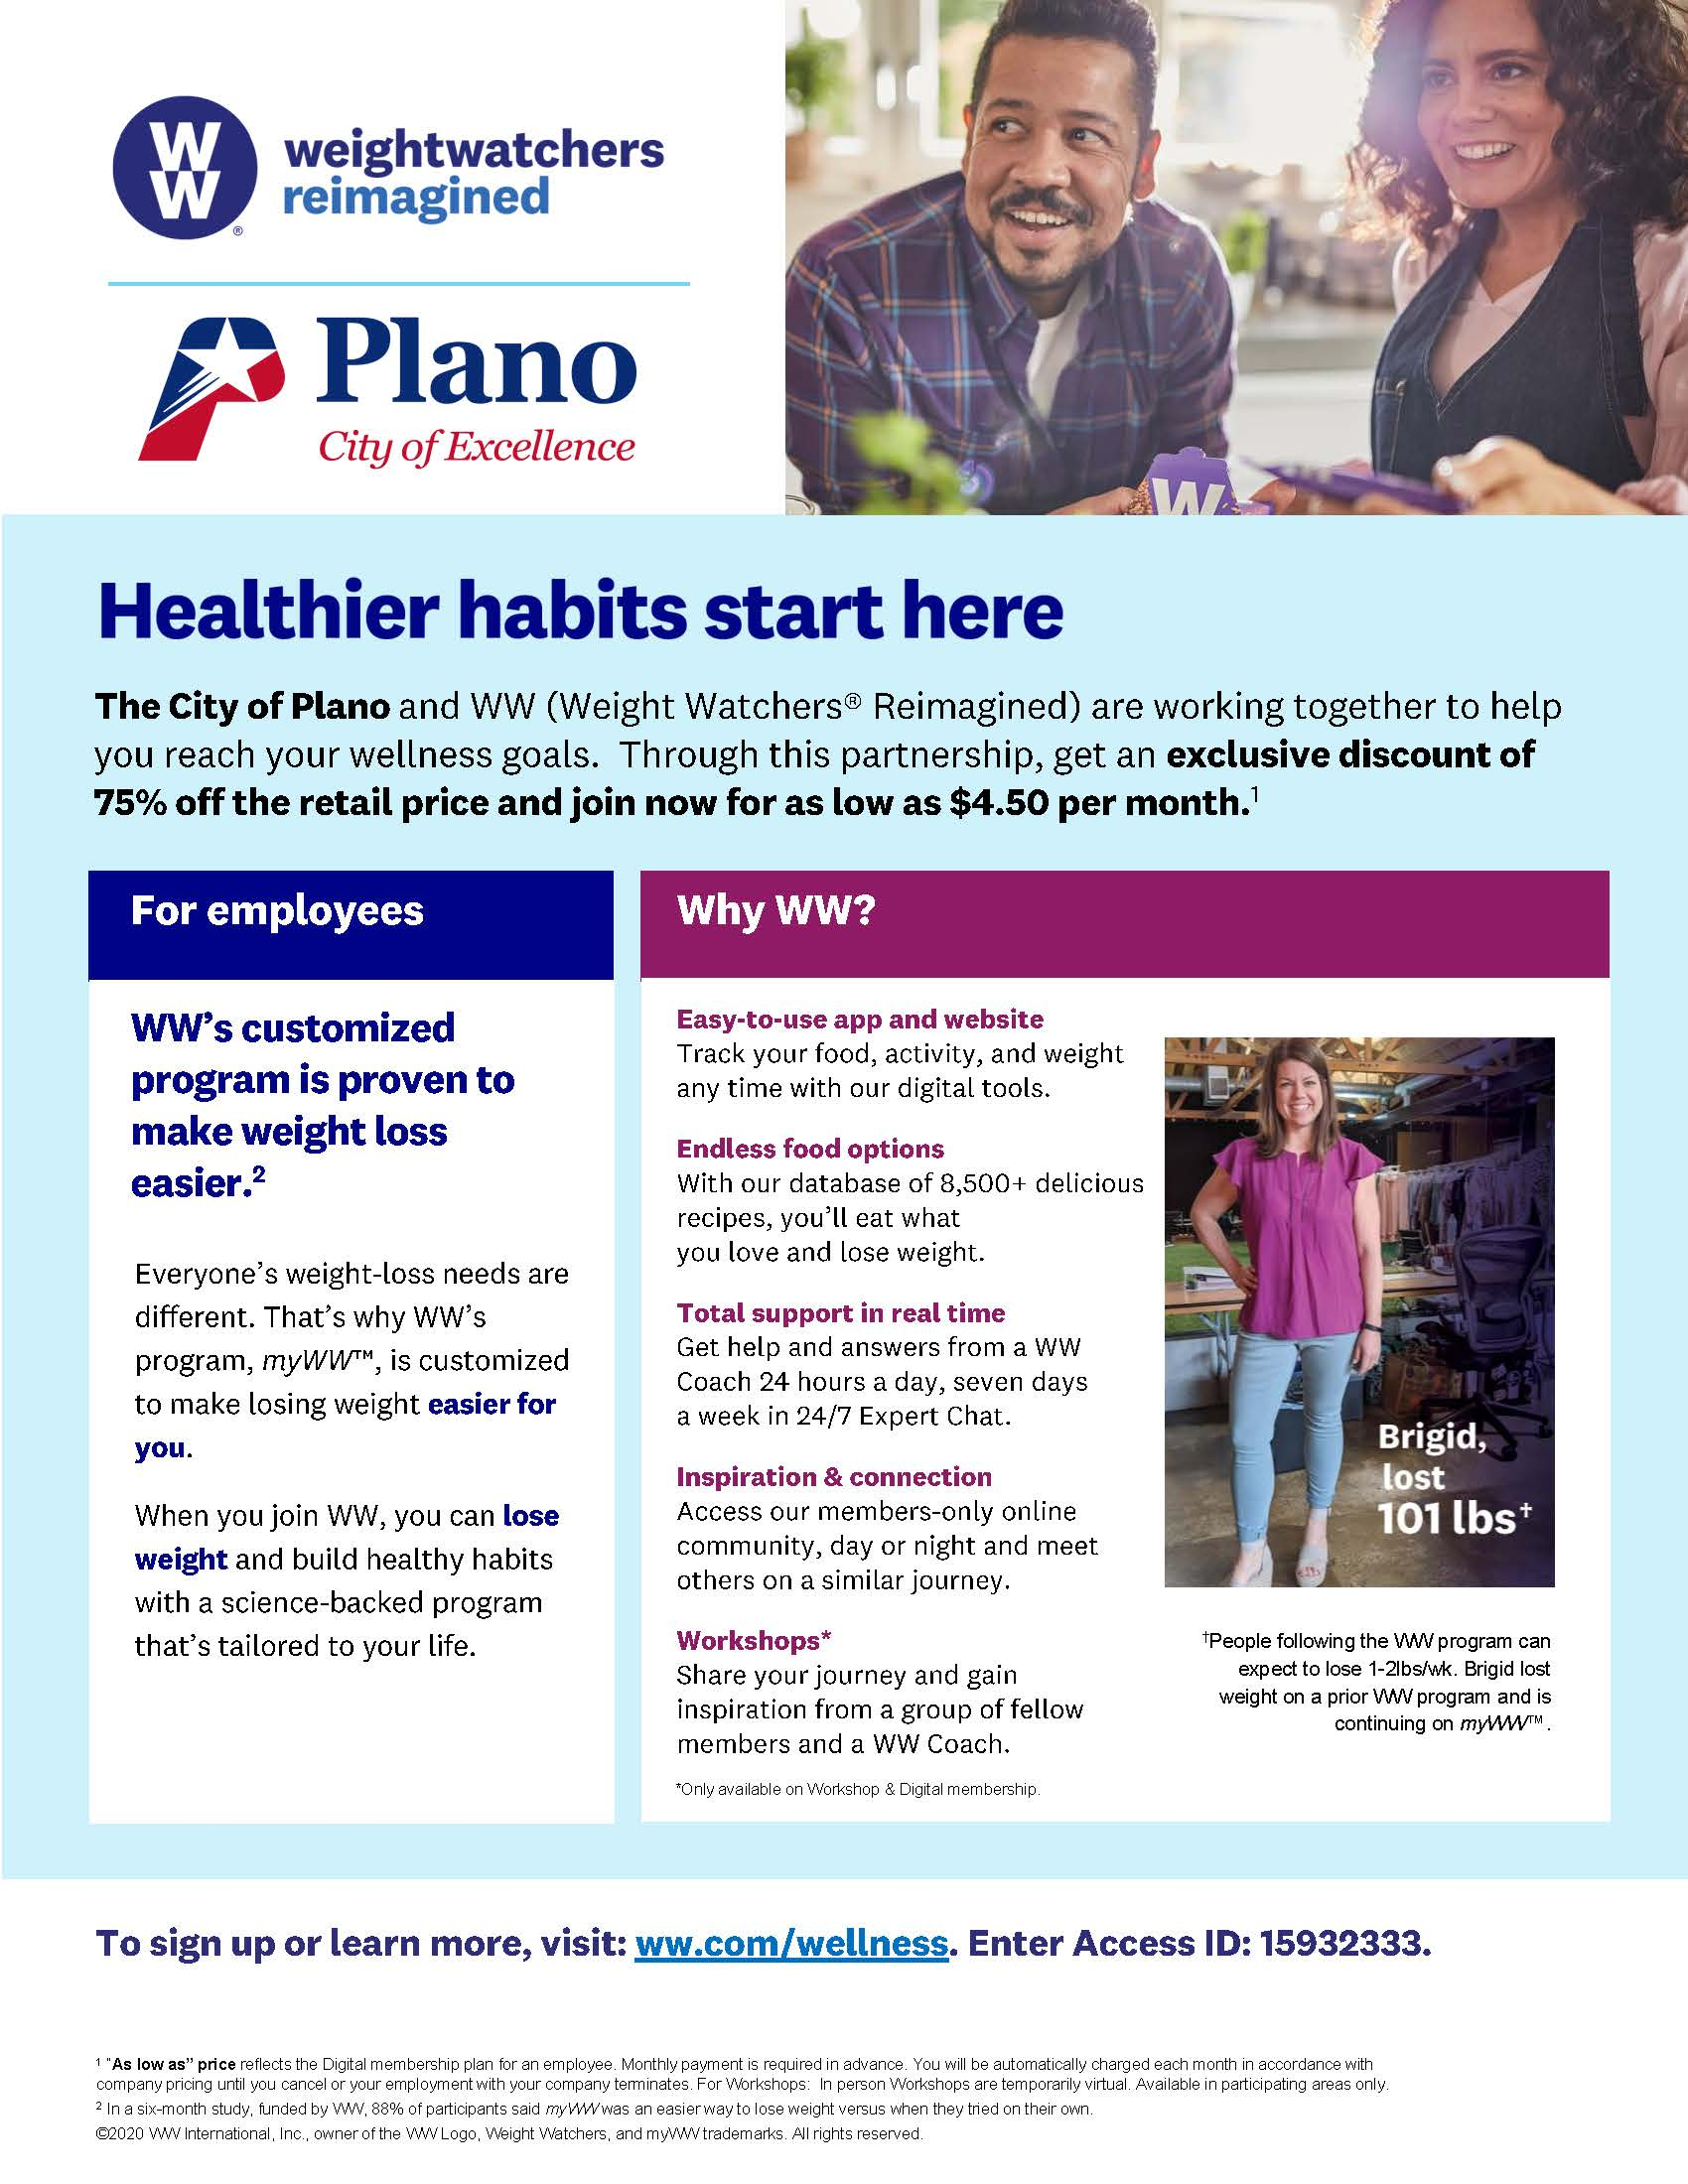 Weight Watchers Partnership with Plano